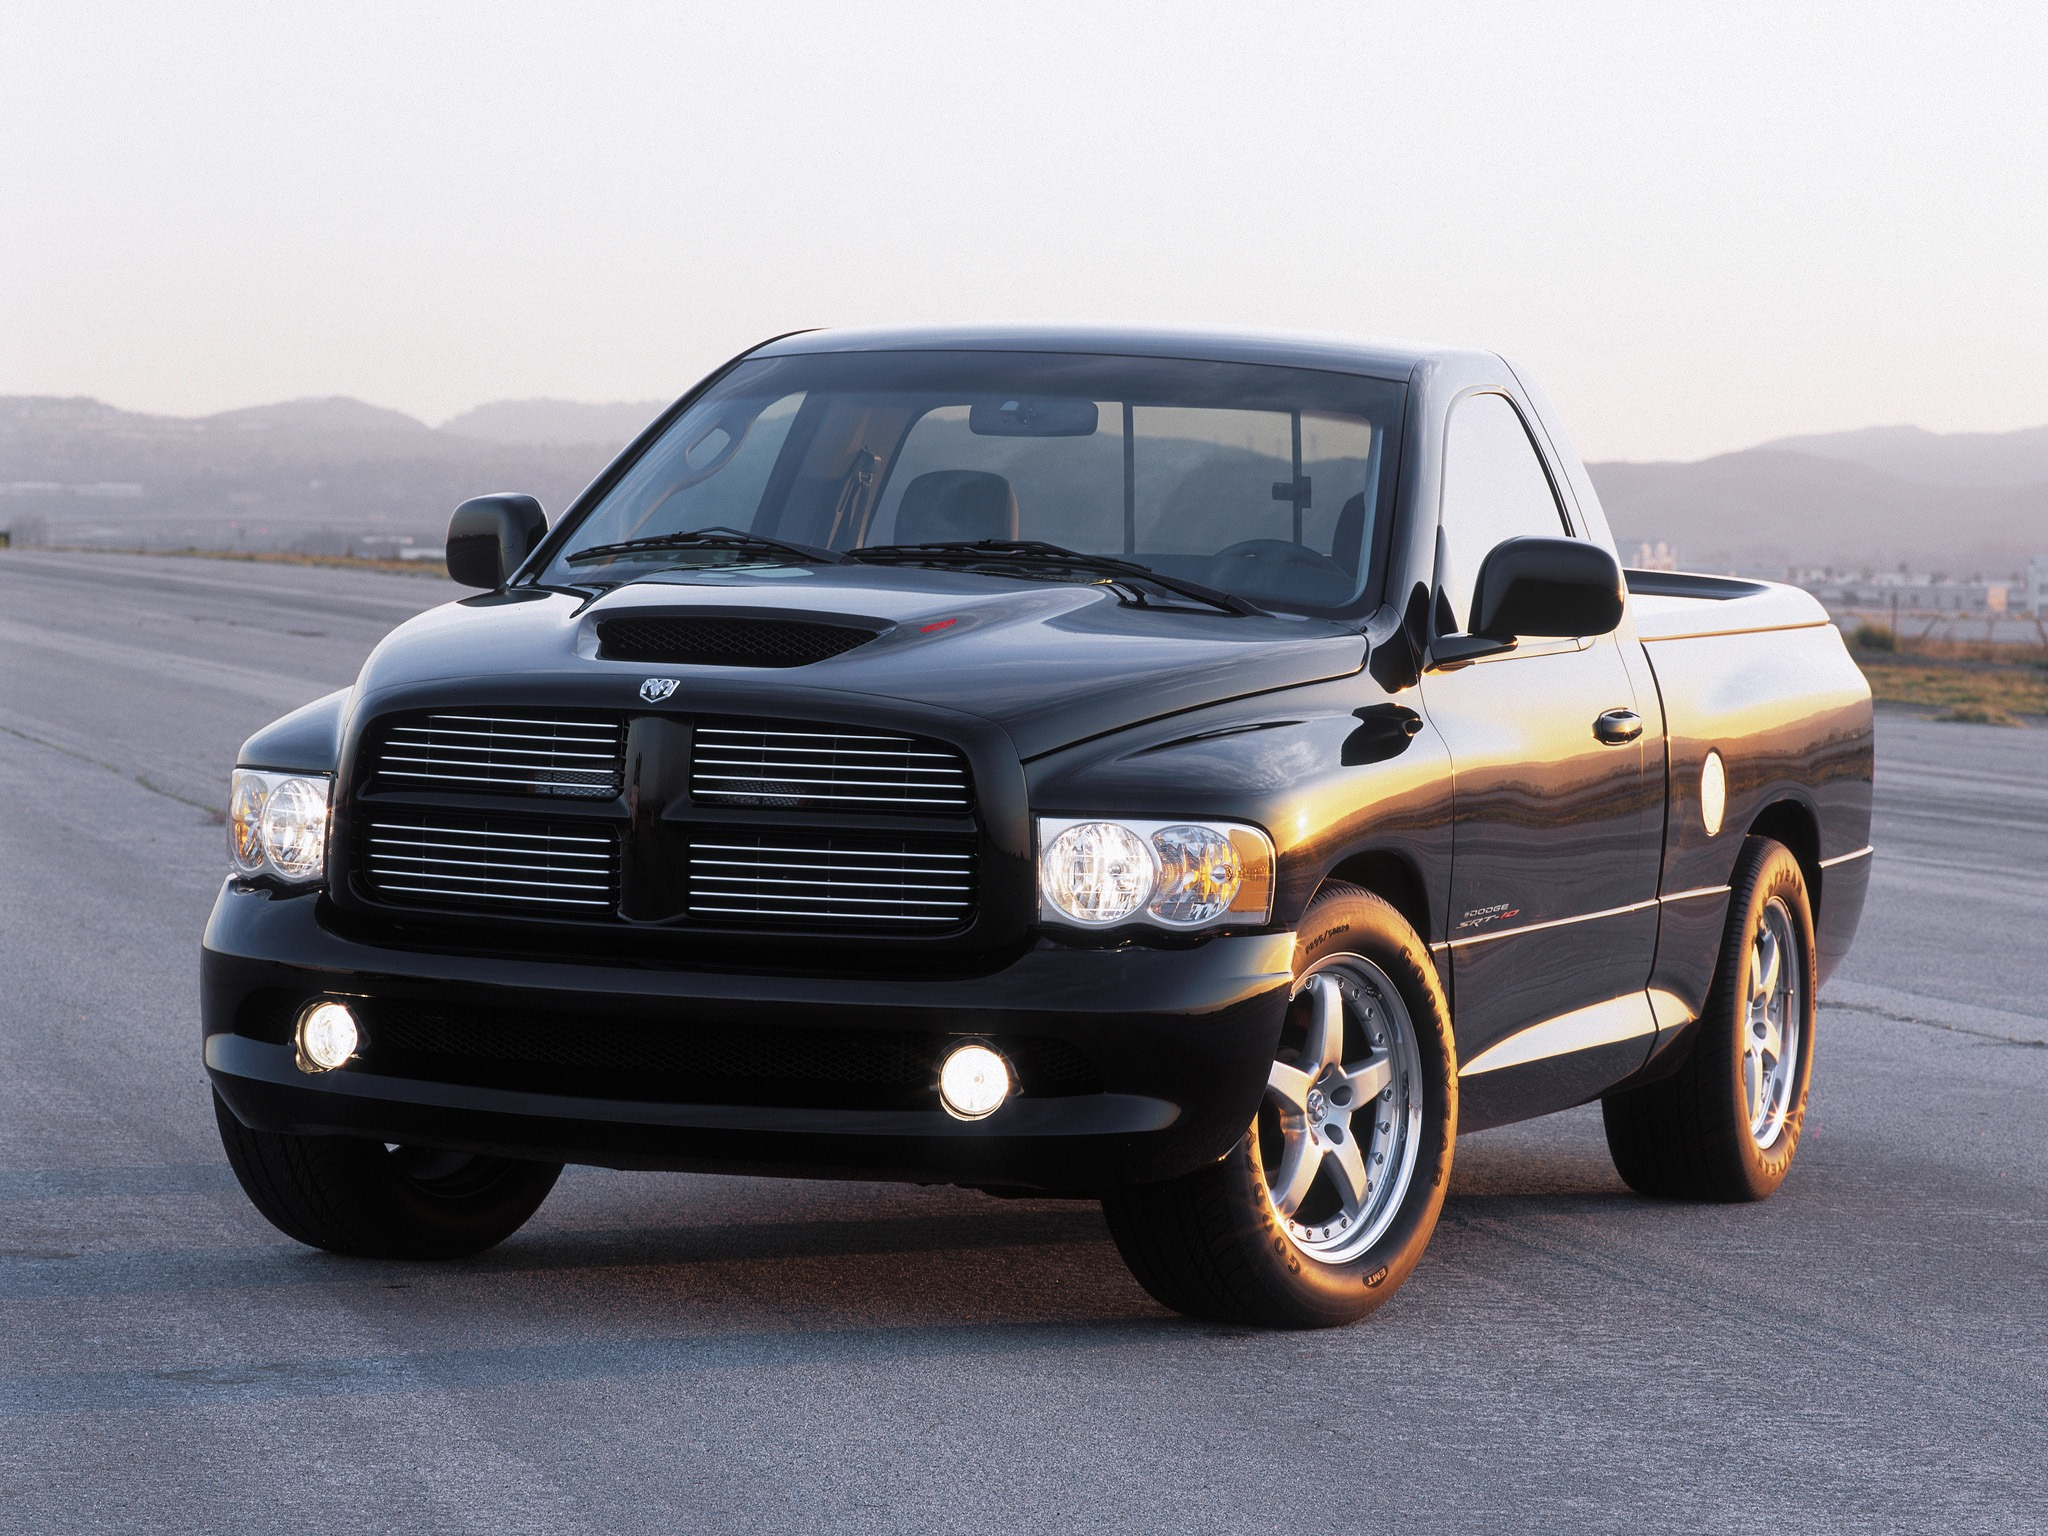 dodge ram srt10 concept 2002 old concept cars. Black Bedroom Furniture Sets. Home Design Ideas